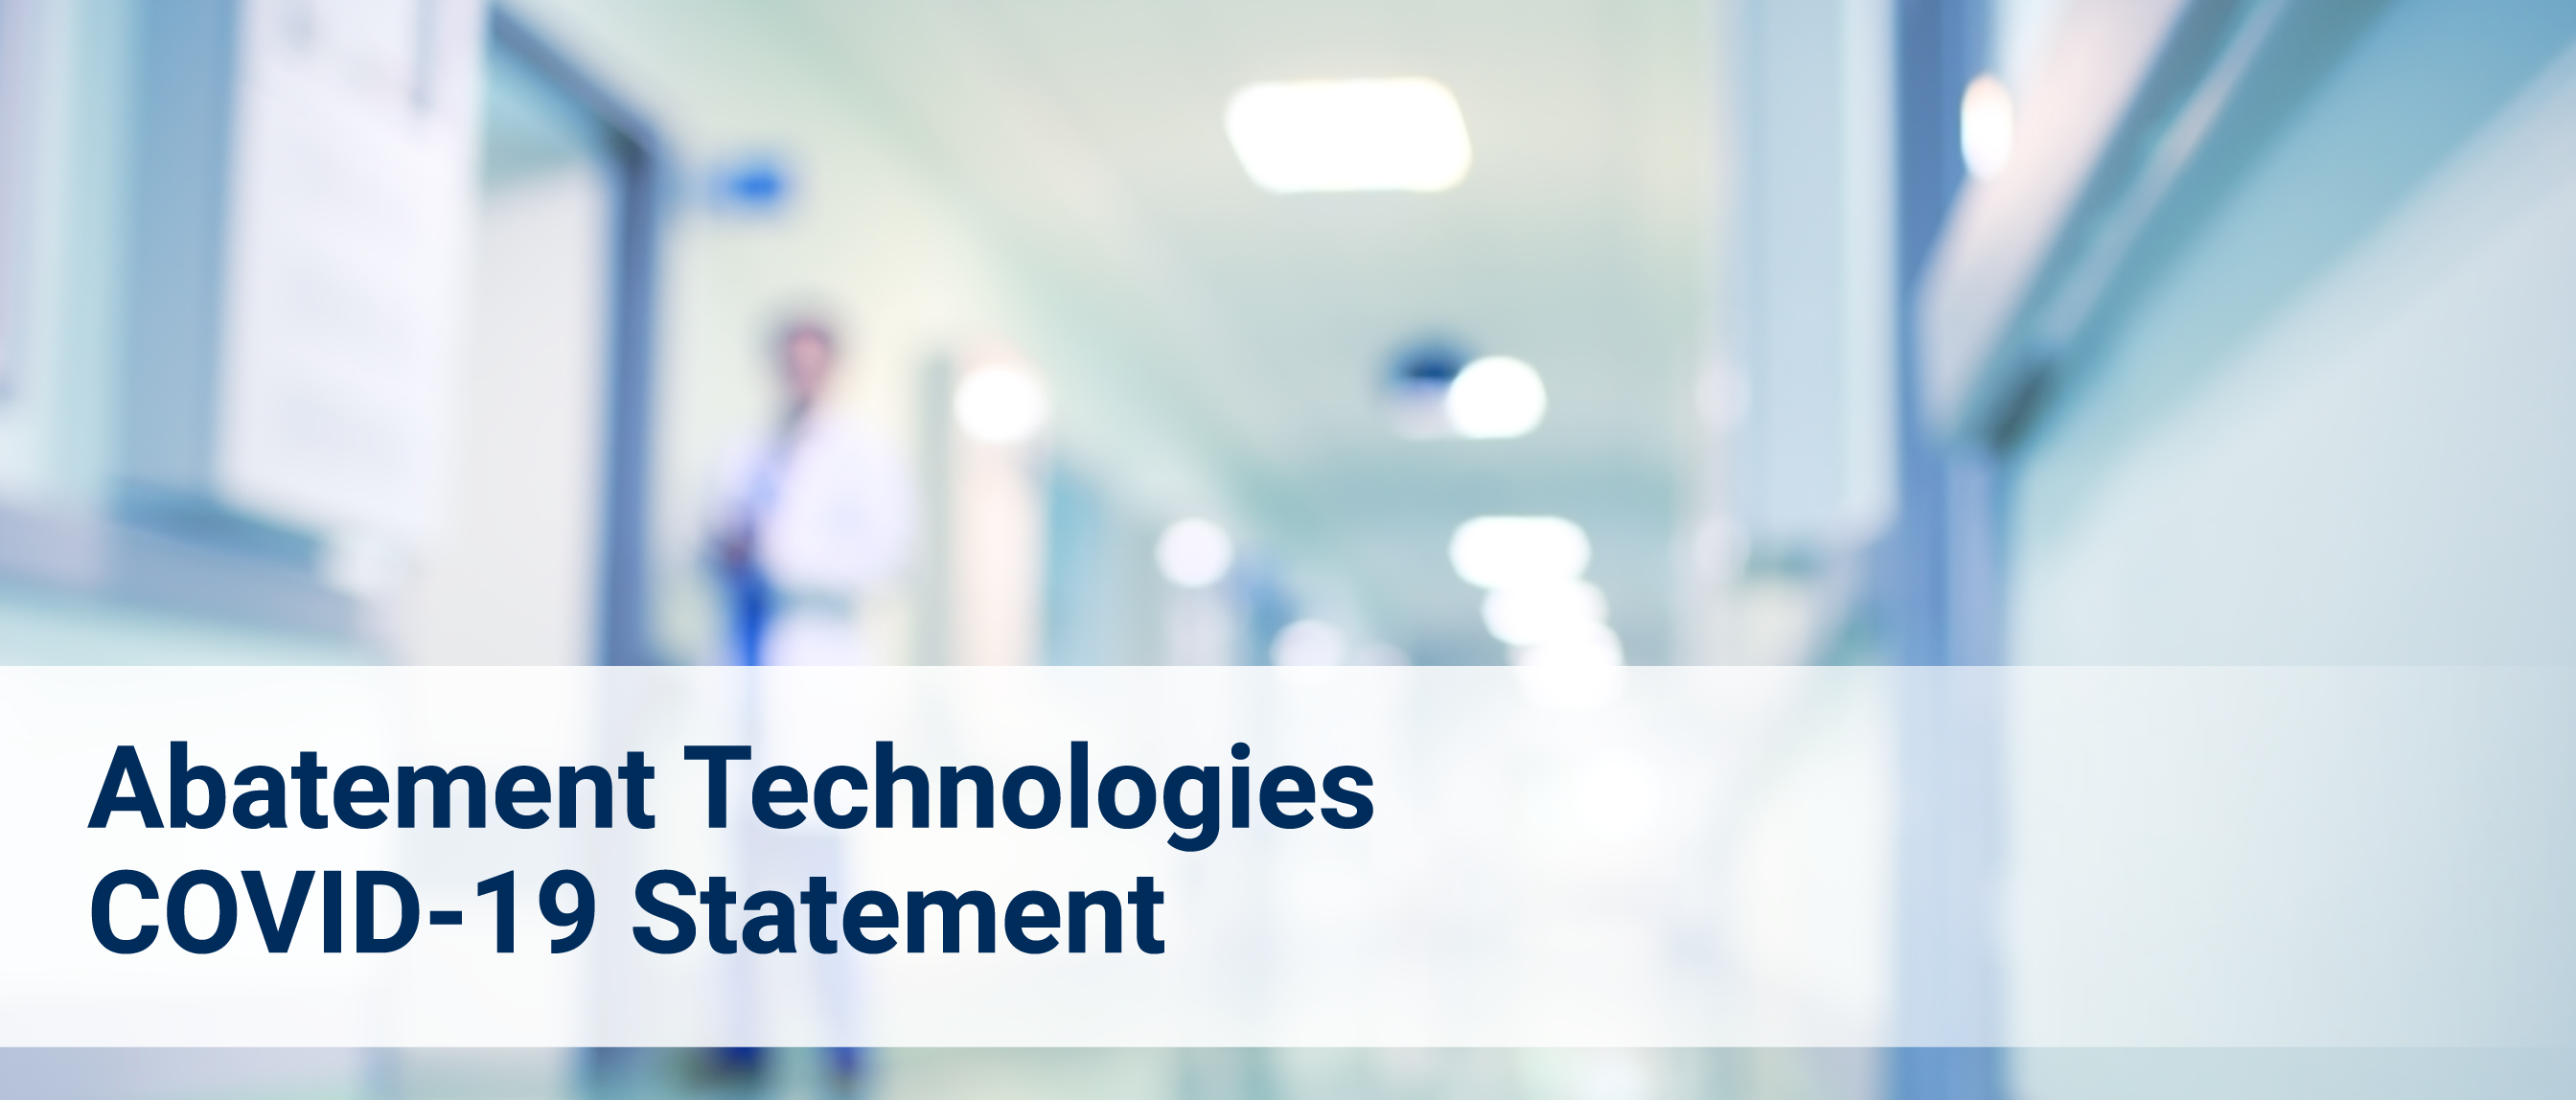 about abatement technologies